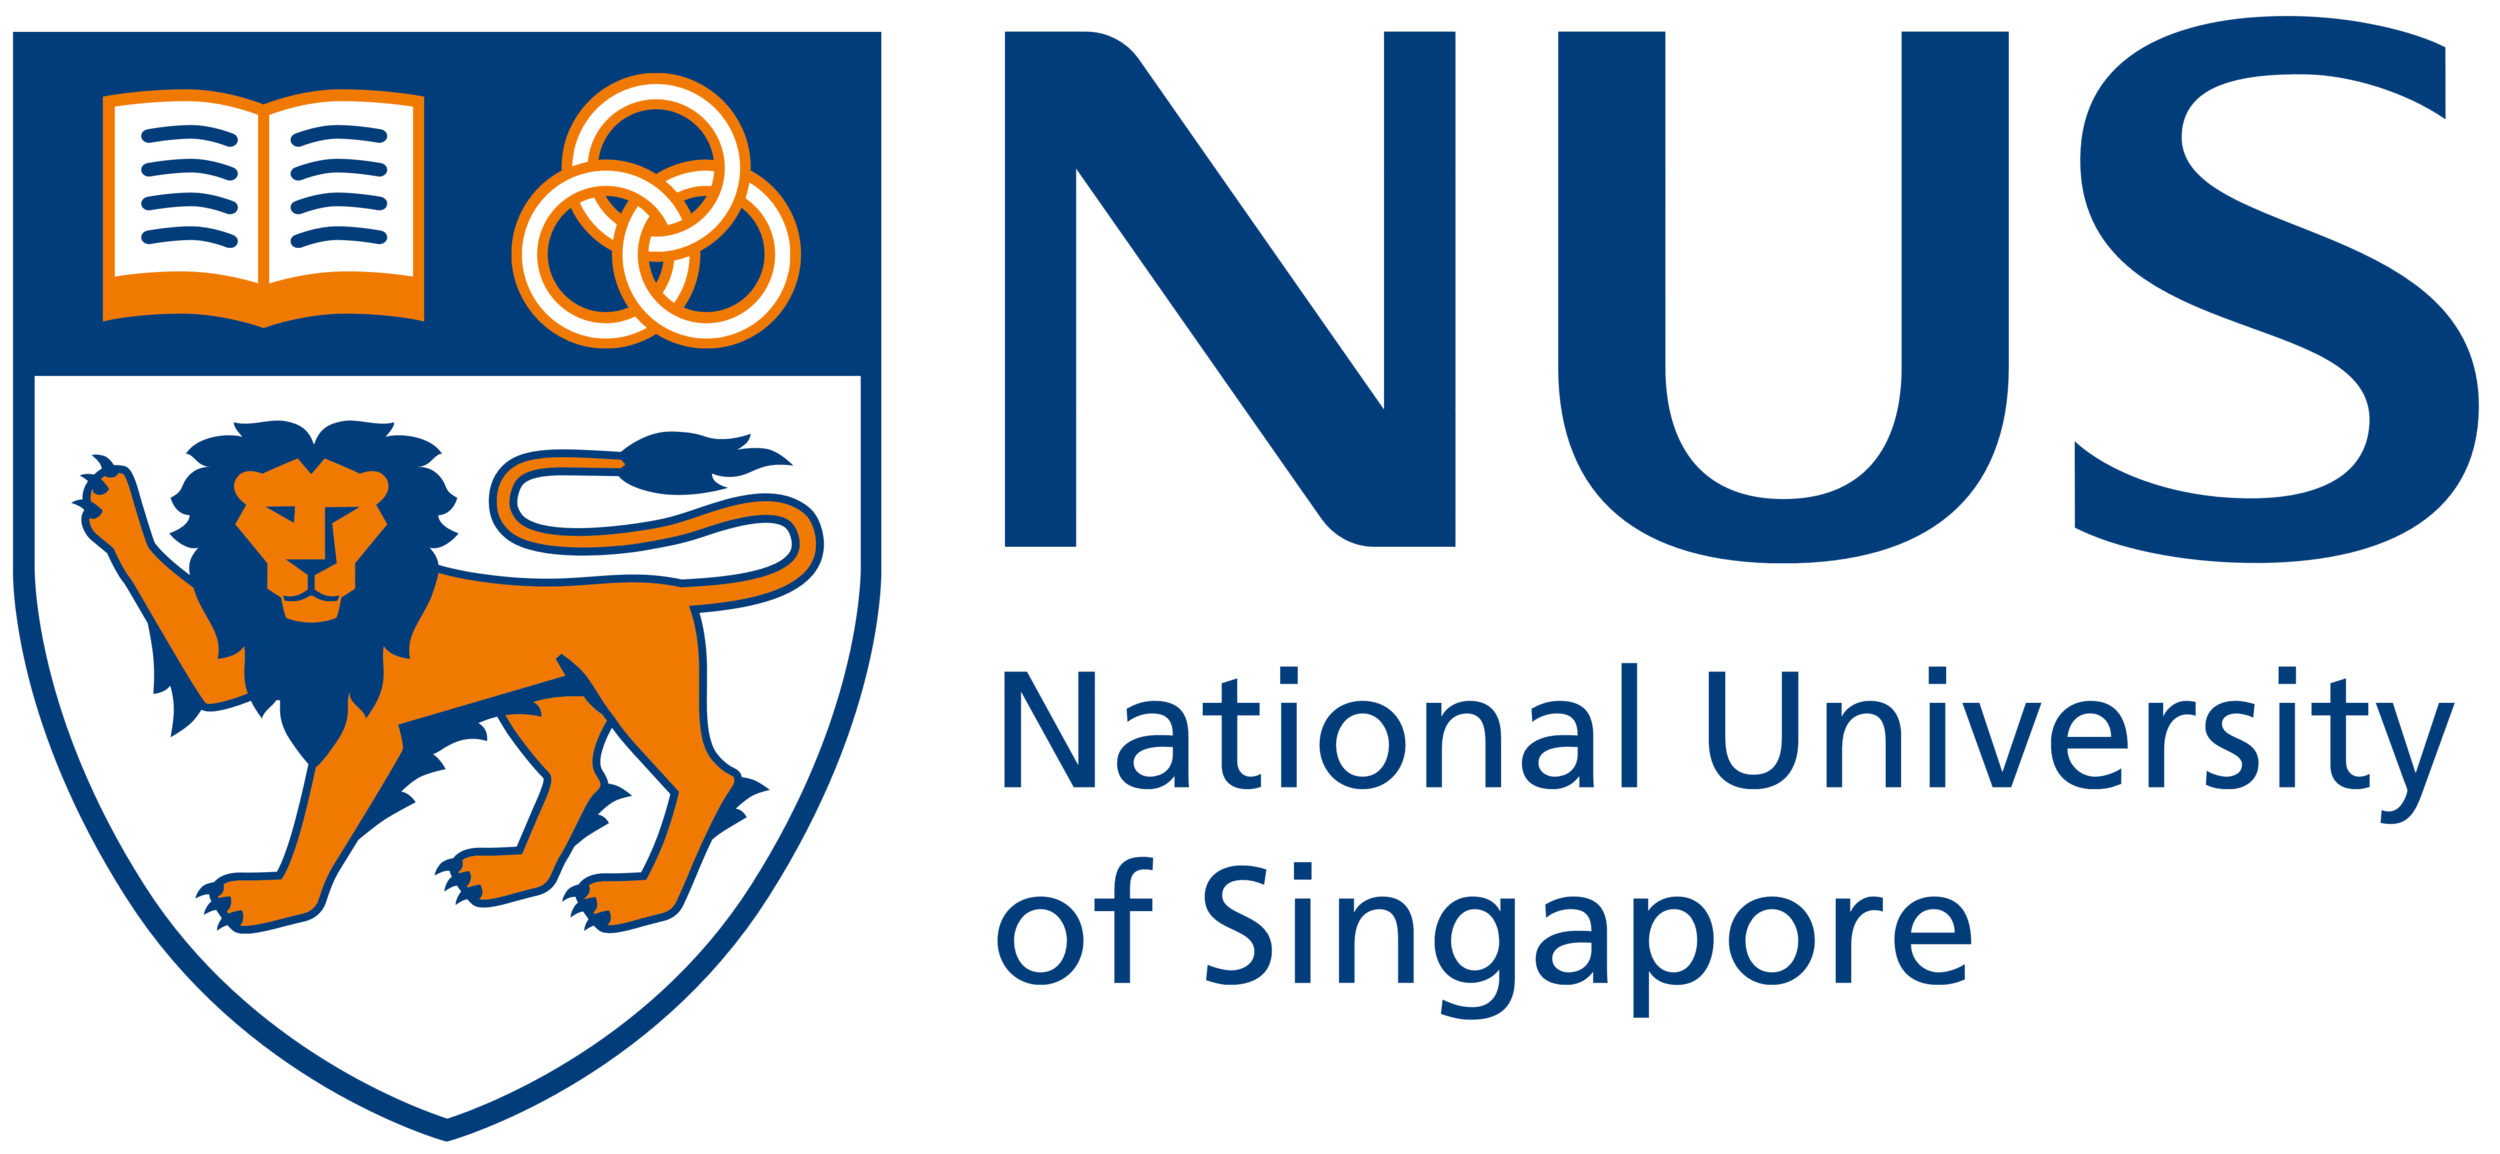 National_University_of_Singapore_logo_NUS.png